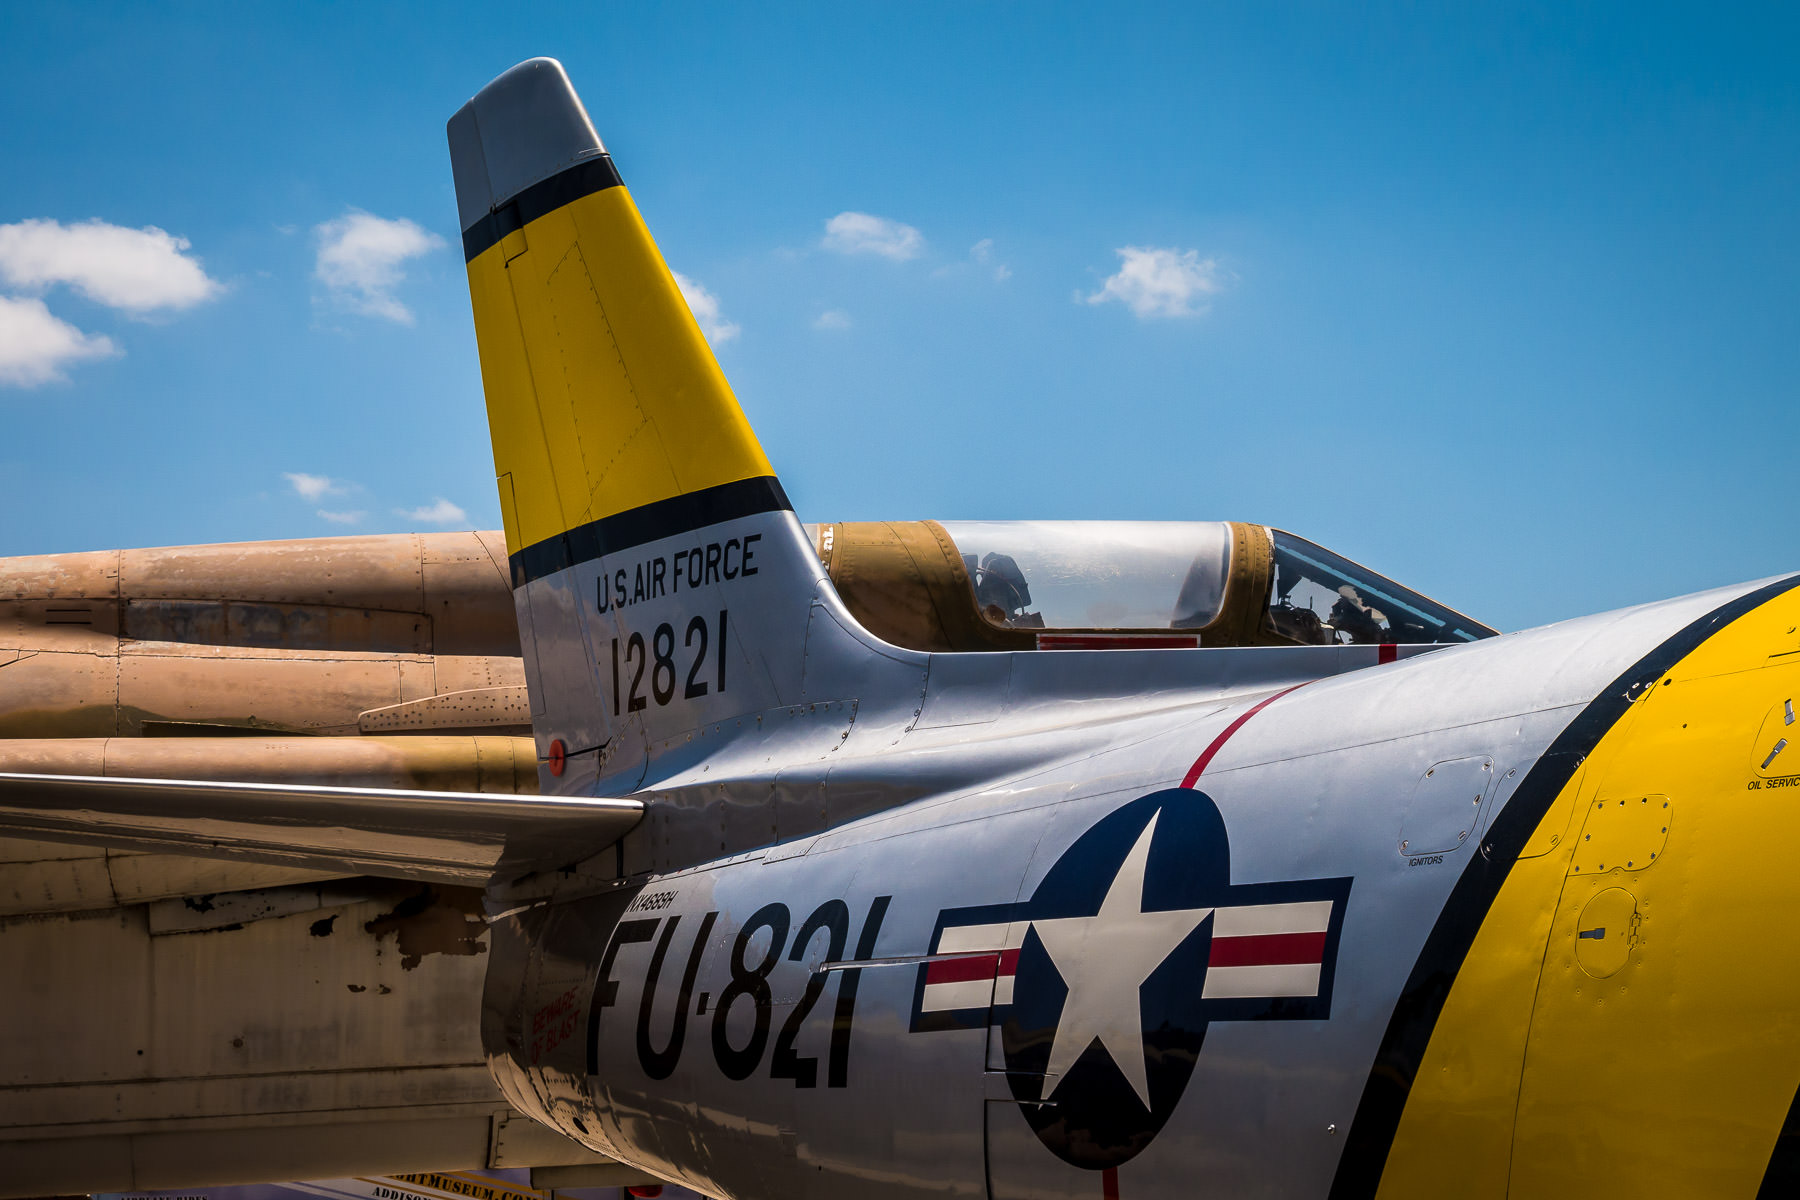 A North American F-86 Sabre (foreground) and a Republic F-105 Thunderchief at Addison, Texas' Cavanaugh Flight Museum.